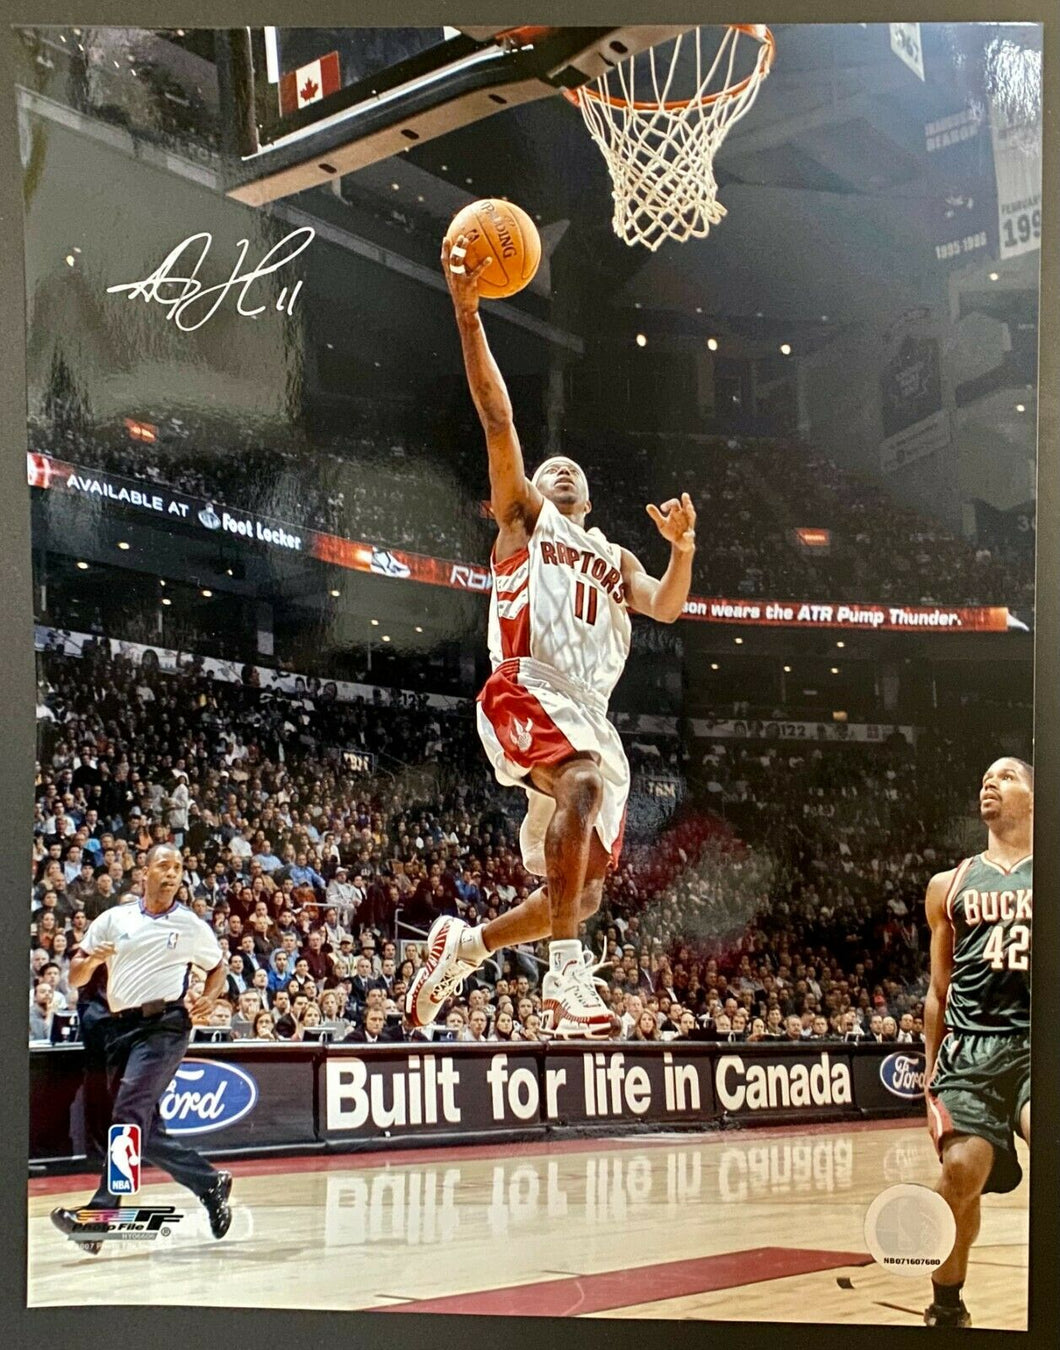 TJ Ford Authentic Signed NBA Photo Toronto Raptors Basketball Autograph 14x11